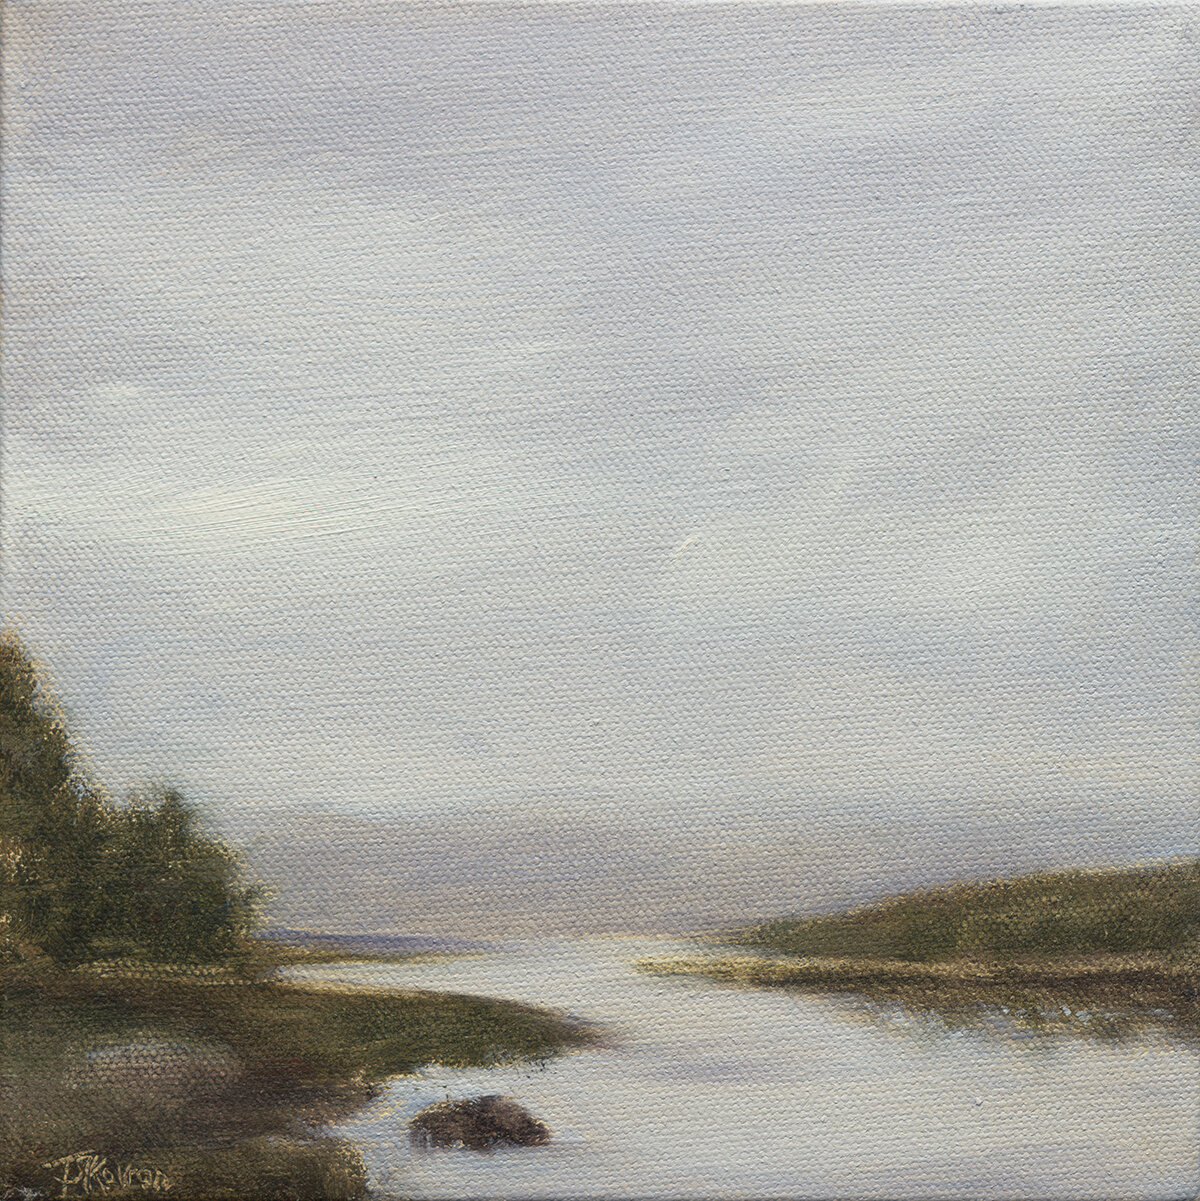 """""""Morning Whisper II"""" 8"""" x 8"""" x 1.5""""D oil on wrapped canvas"""